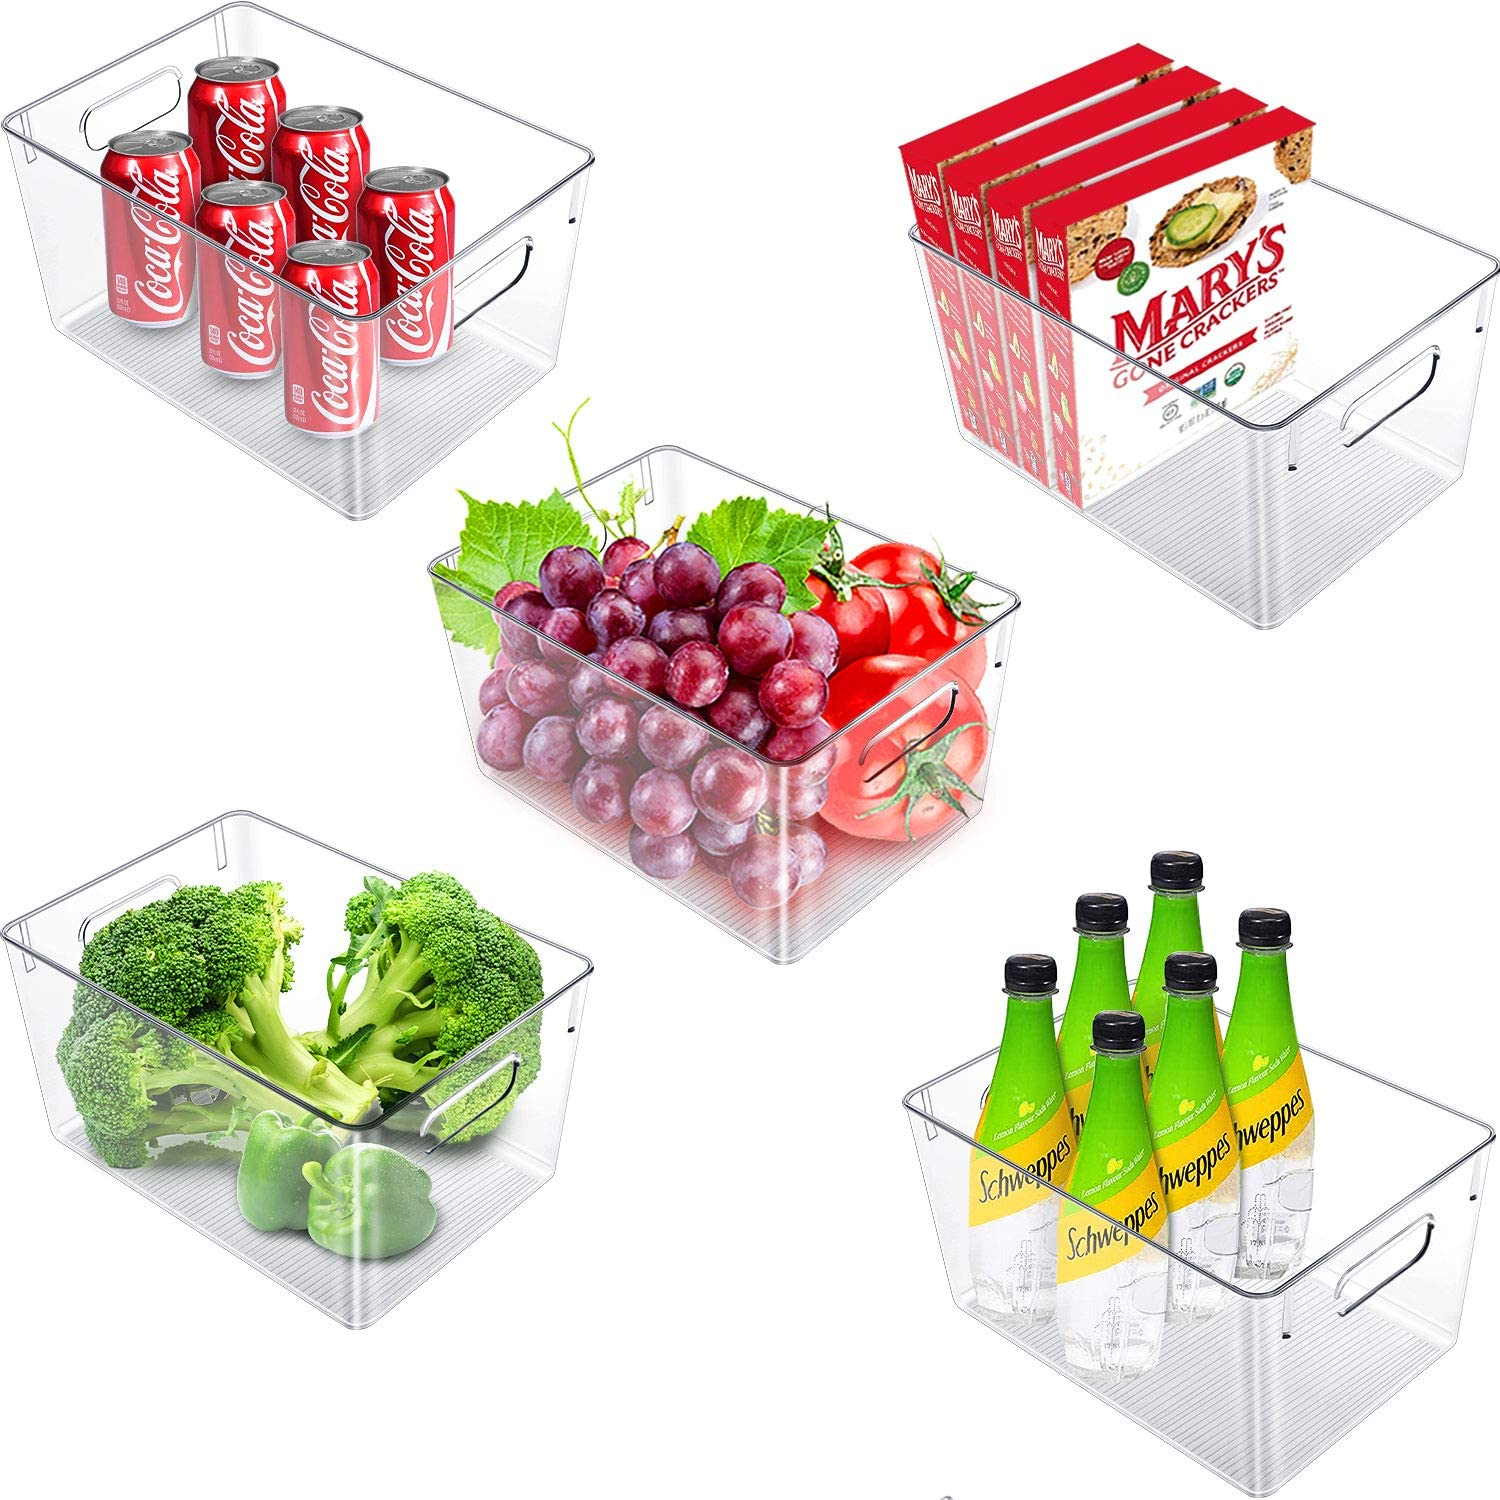 Vsadey Clear Plastic Storage Bins 5 Pack, Large Fridge Organizer Container with Handles Perfect for Organizing, Kitchens, Fridge, Cabinets, for Storing food, Snacks, Clothes, Toys - 11